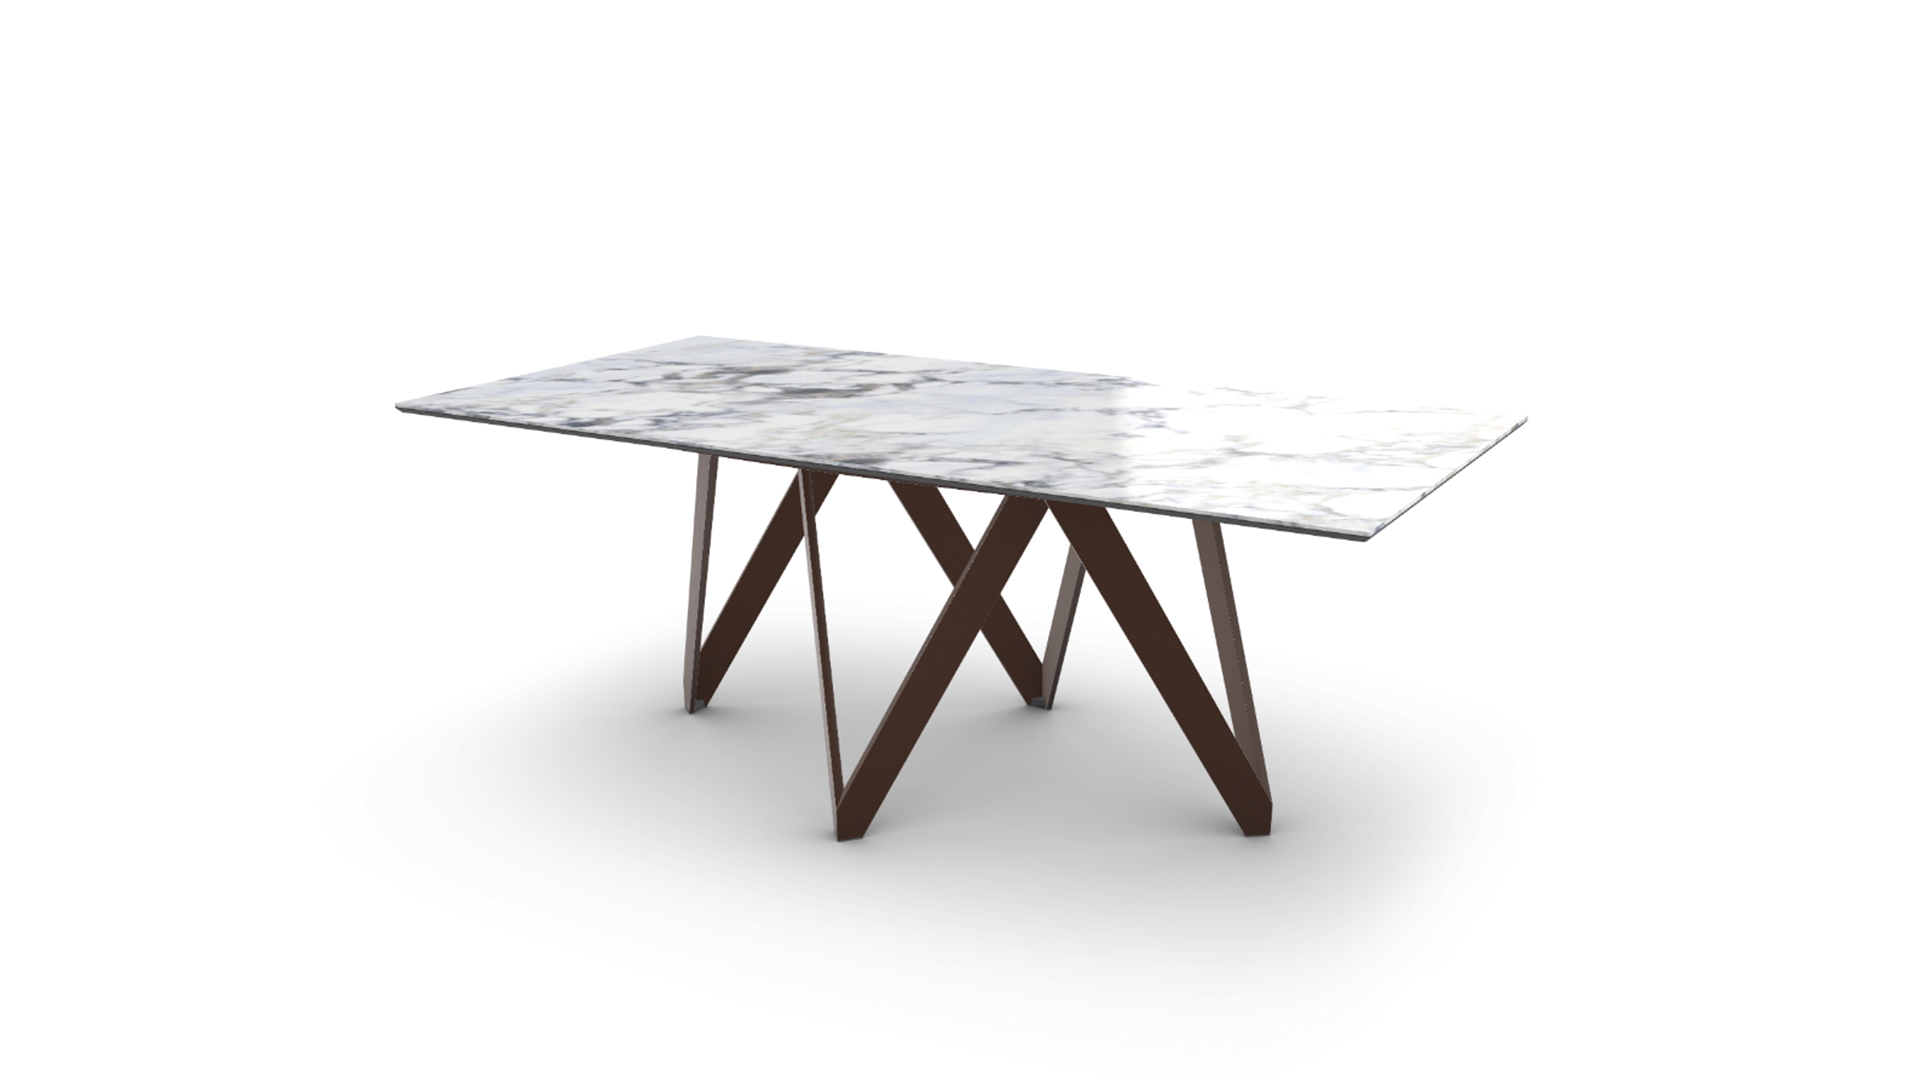 calligaris table demo.png